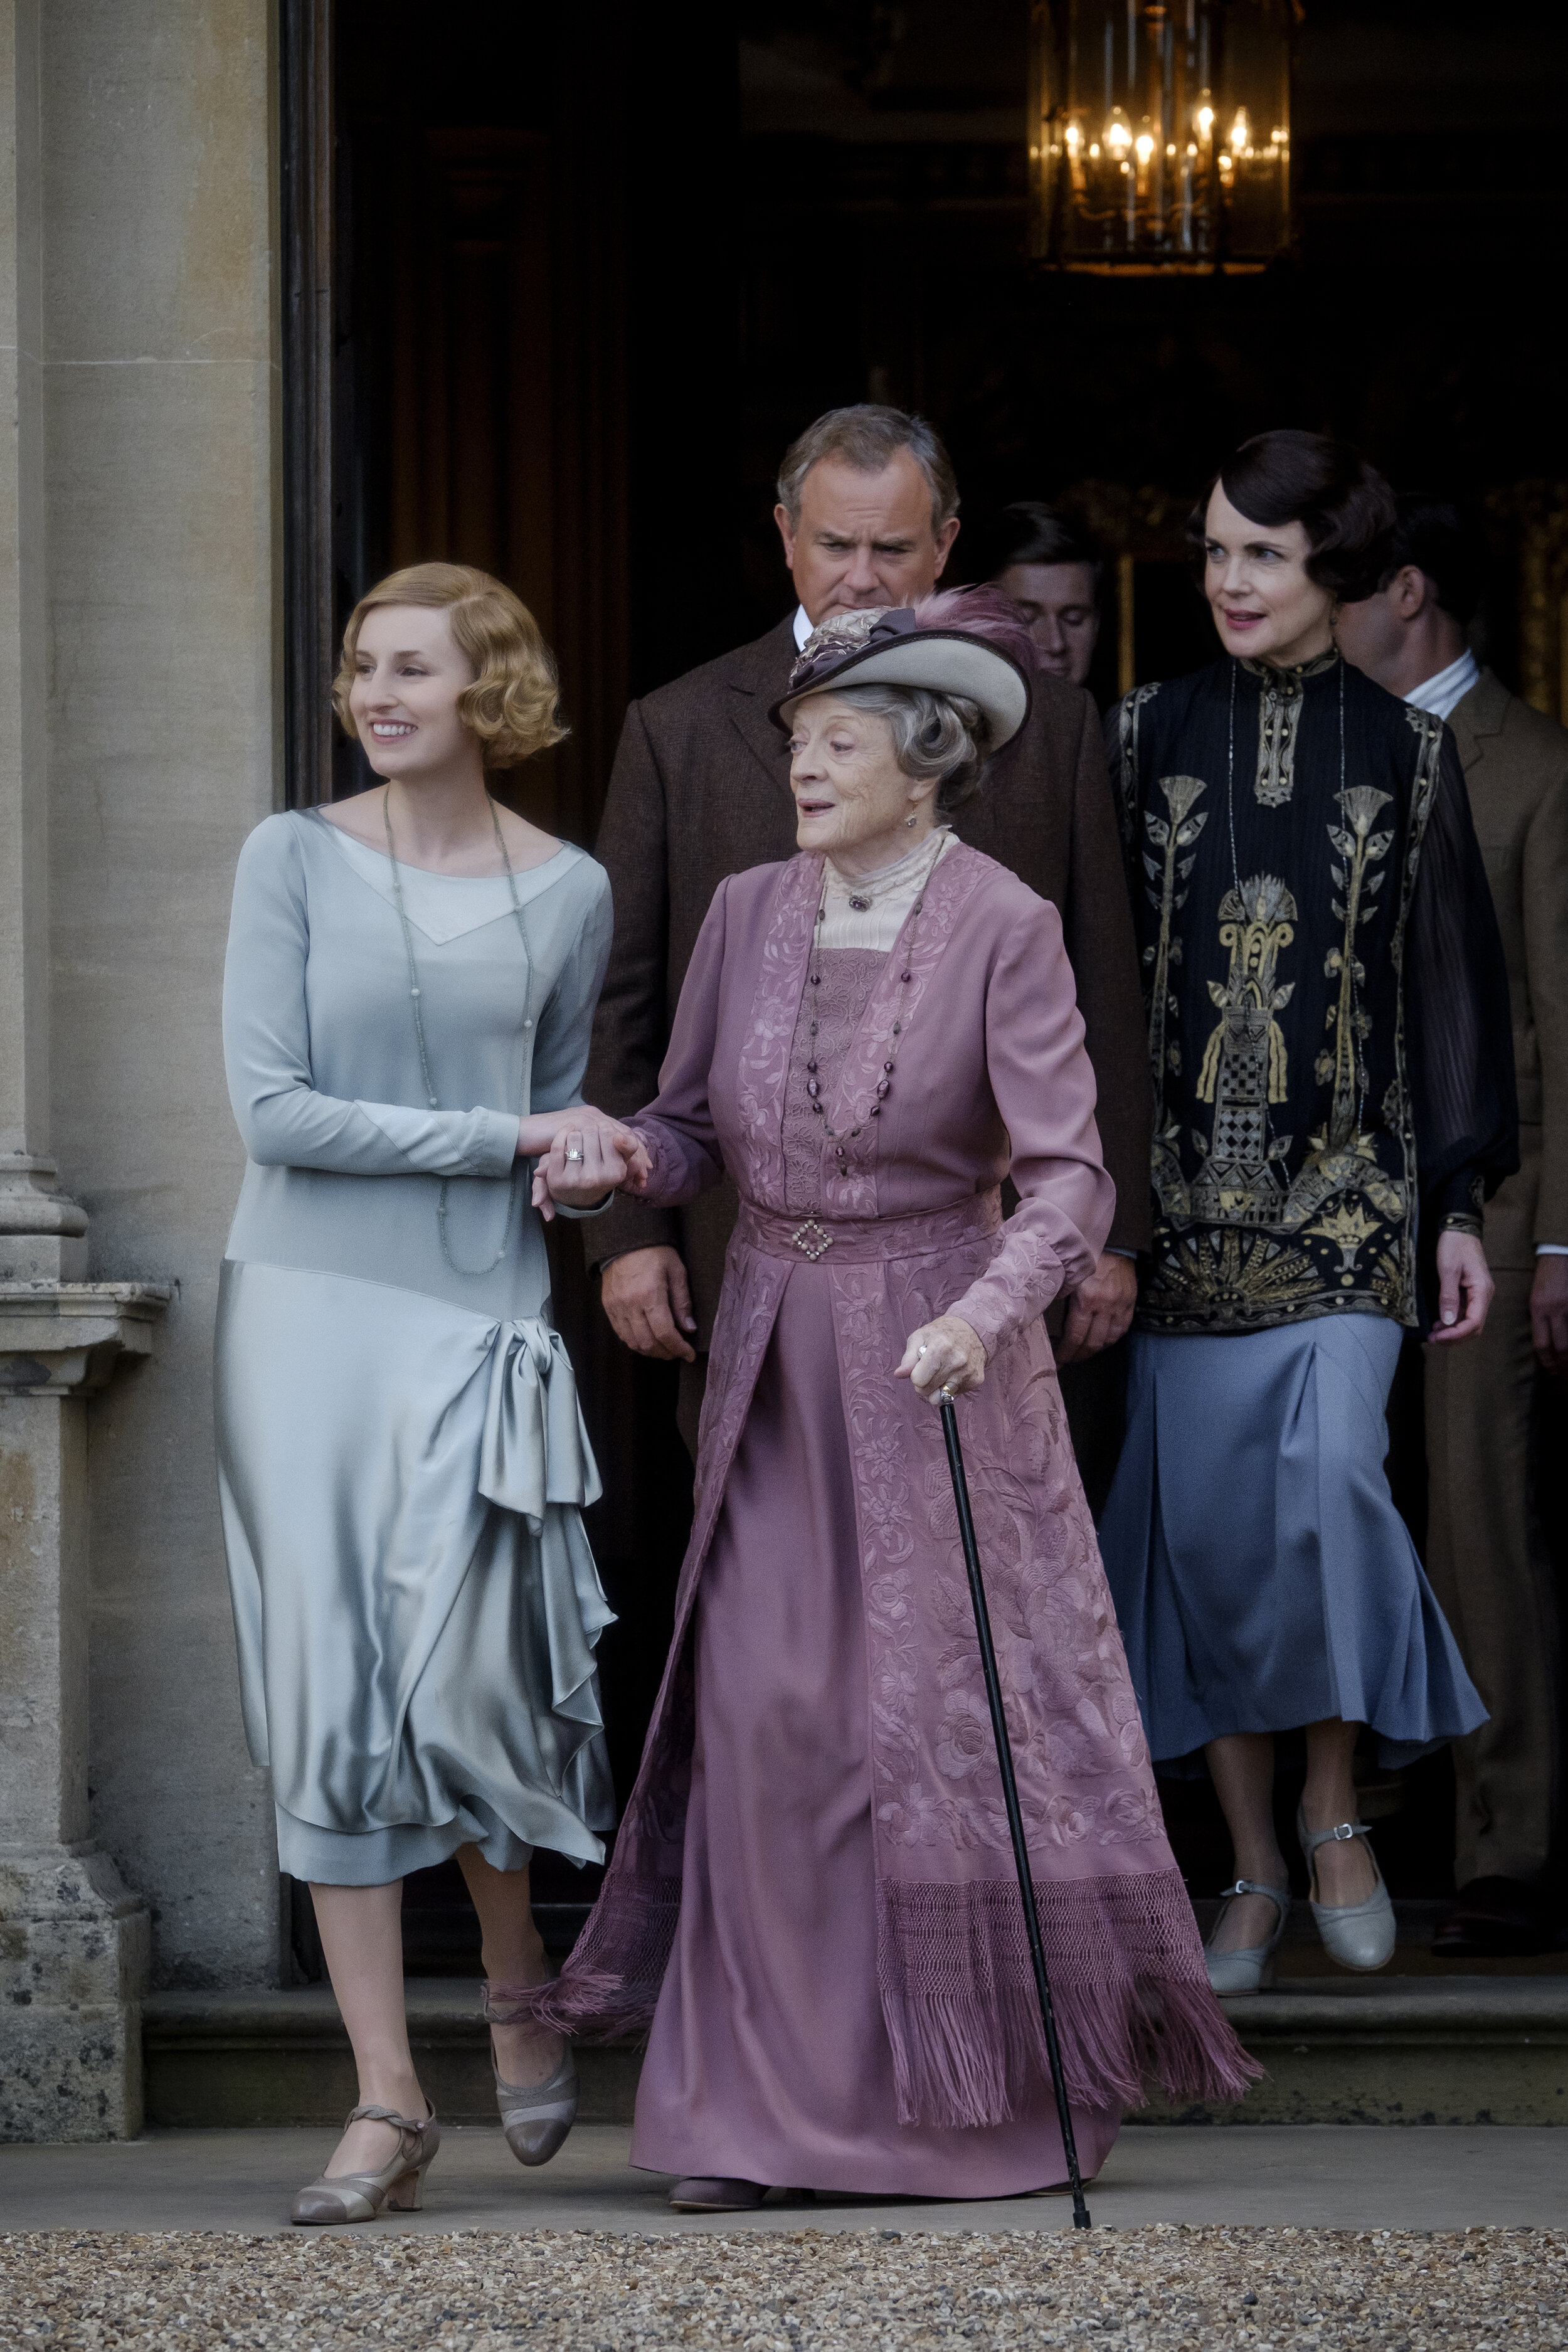 Look who's back in the Downton Abbey movie. (Photo: Jaap Buitendijk / © 2019 Focus Features, LLC)